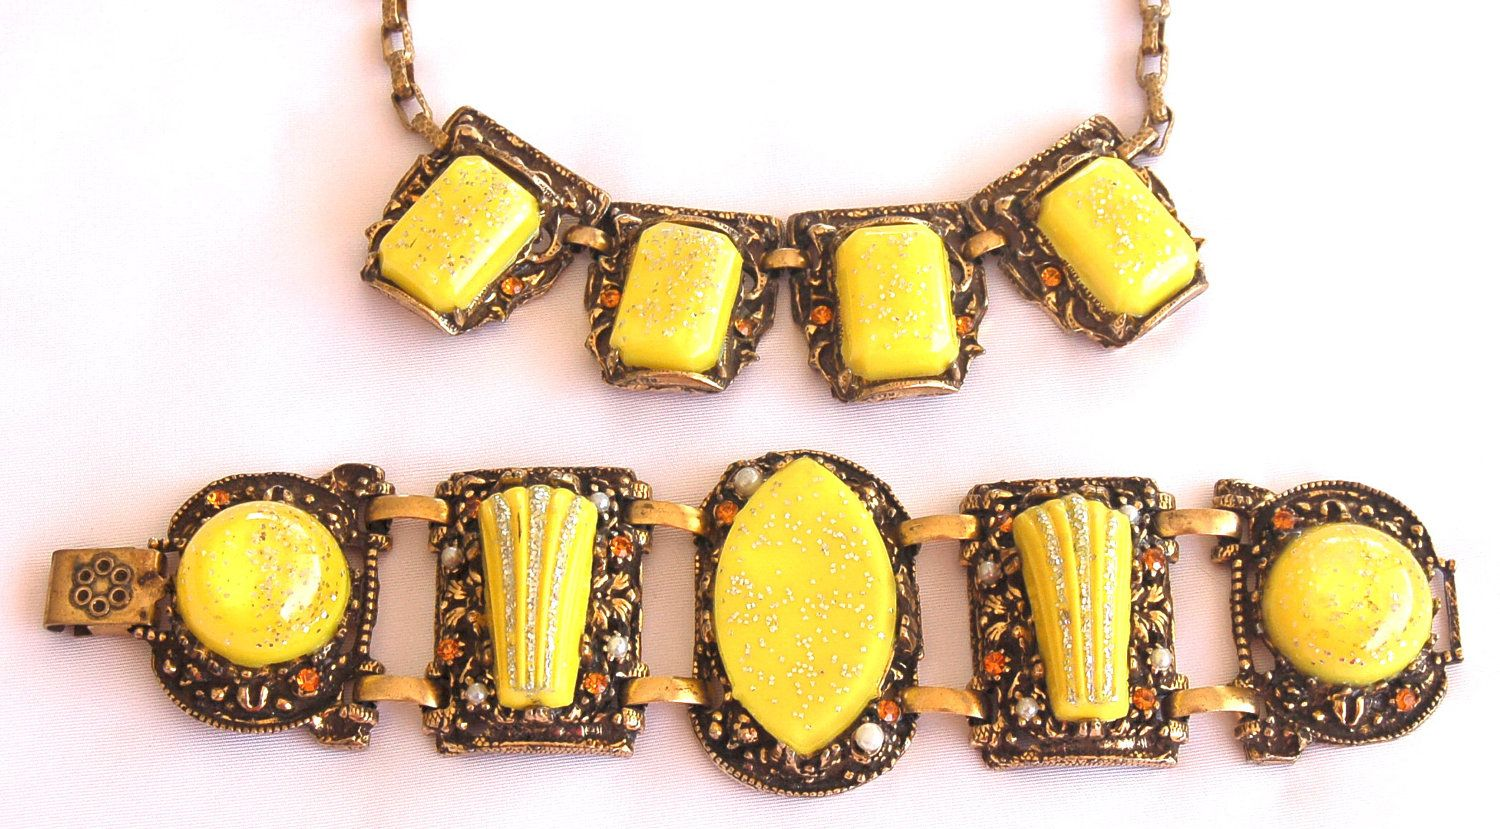 Selro Necklace Bracelet Set  Yellow Confetti by EmbellishgirlVintage on Etsy https://www.etsy.com/listing/82616791/selro-necklace-bracelet-set-yellow